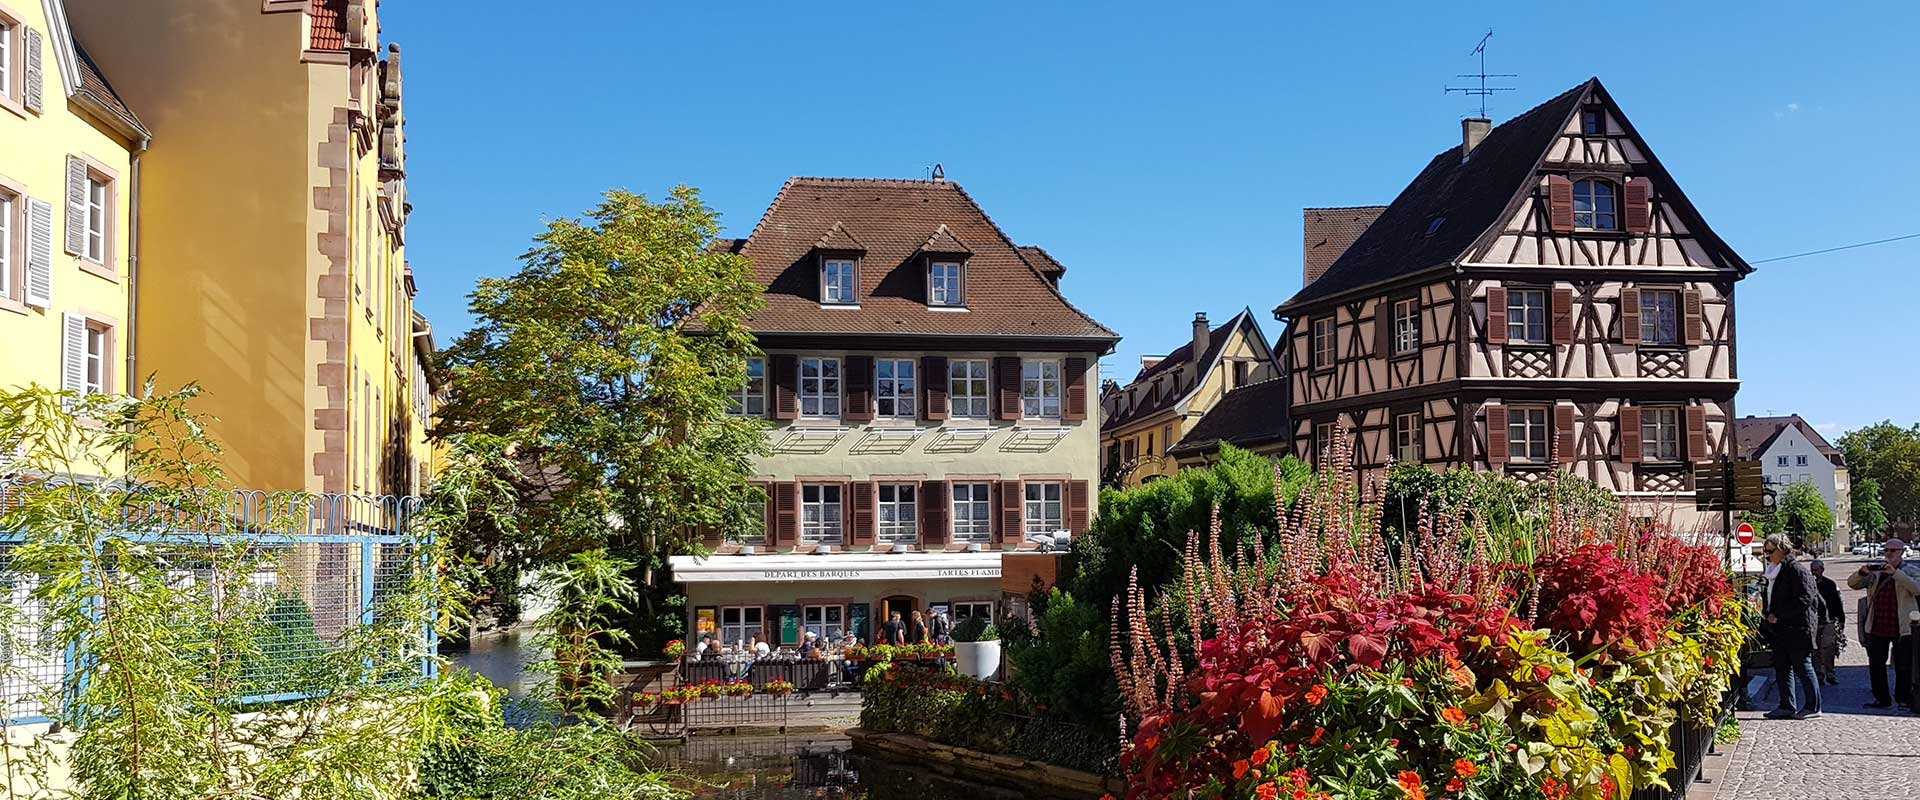 Colmar - village traditionnel